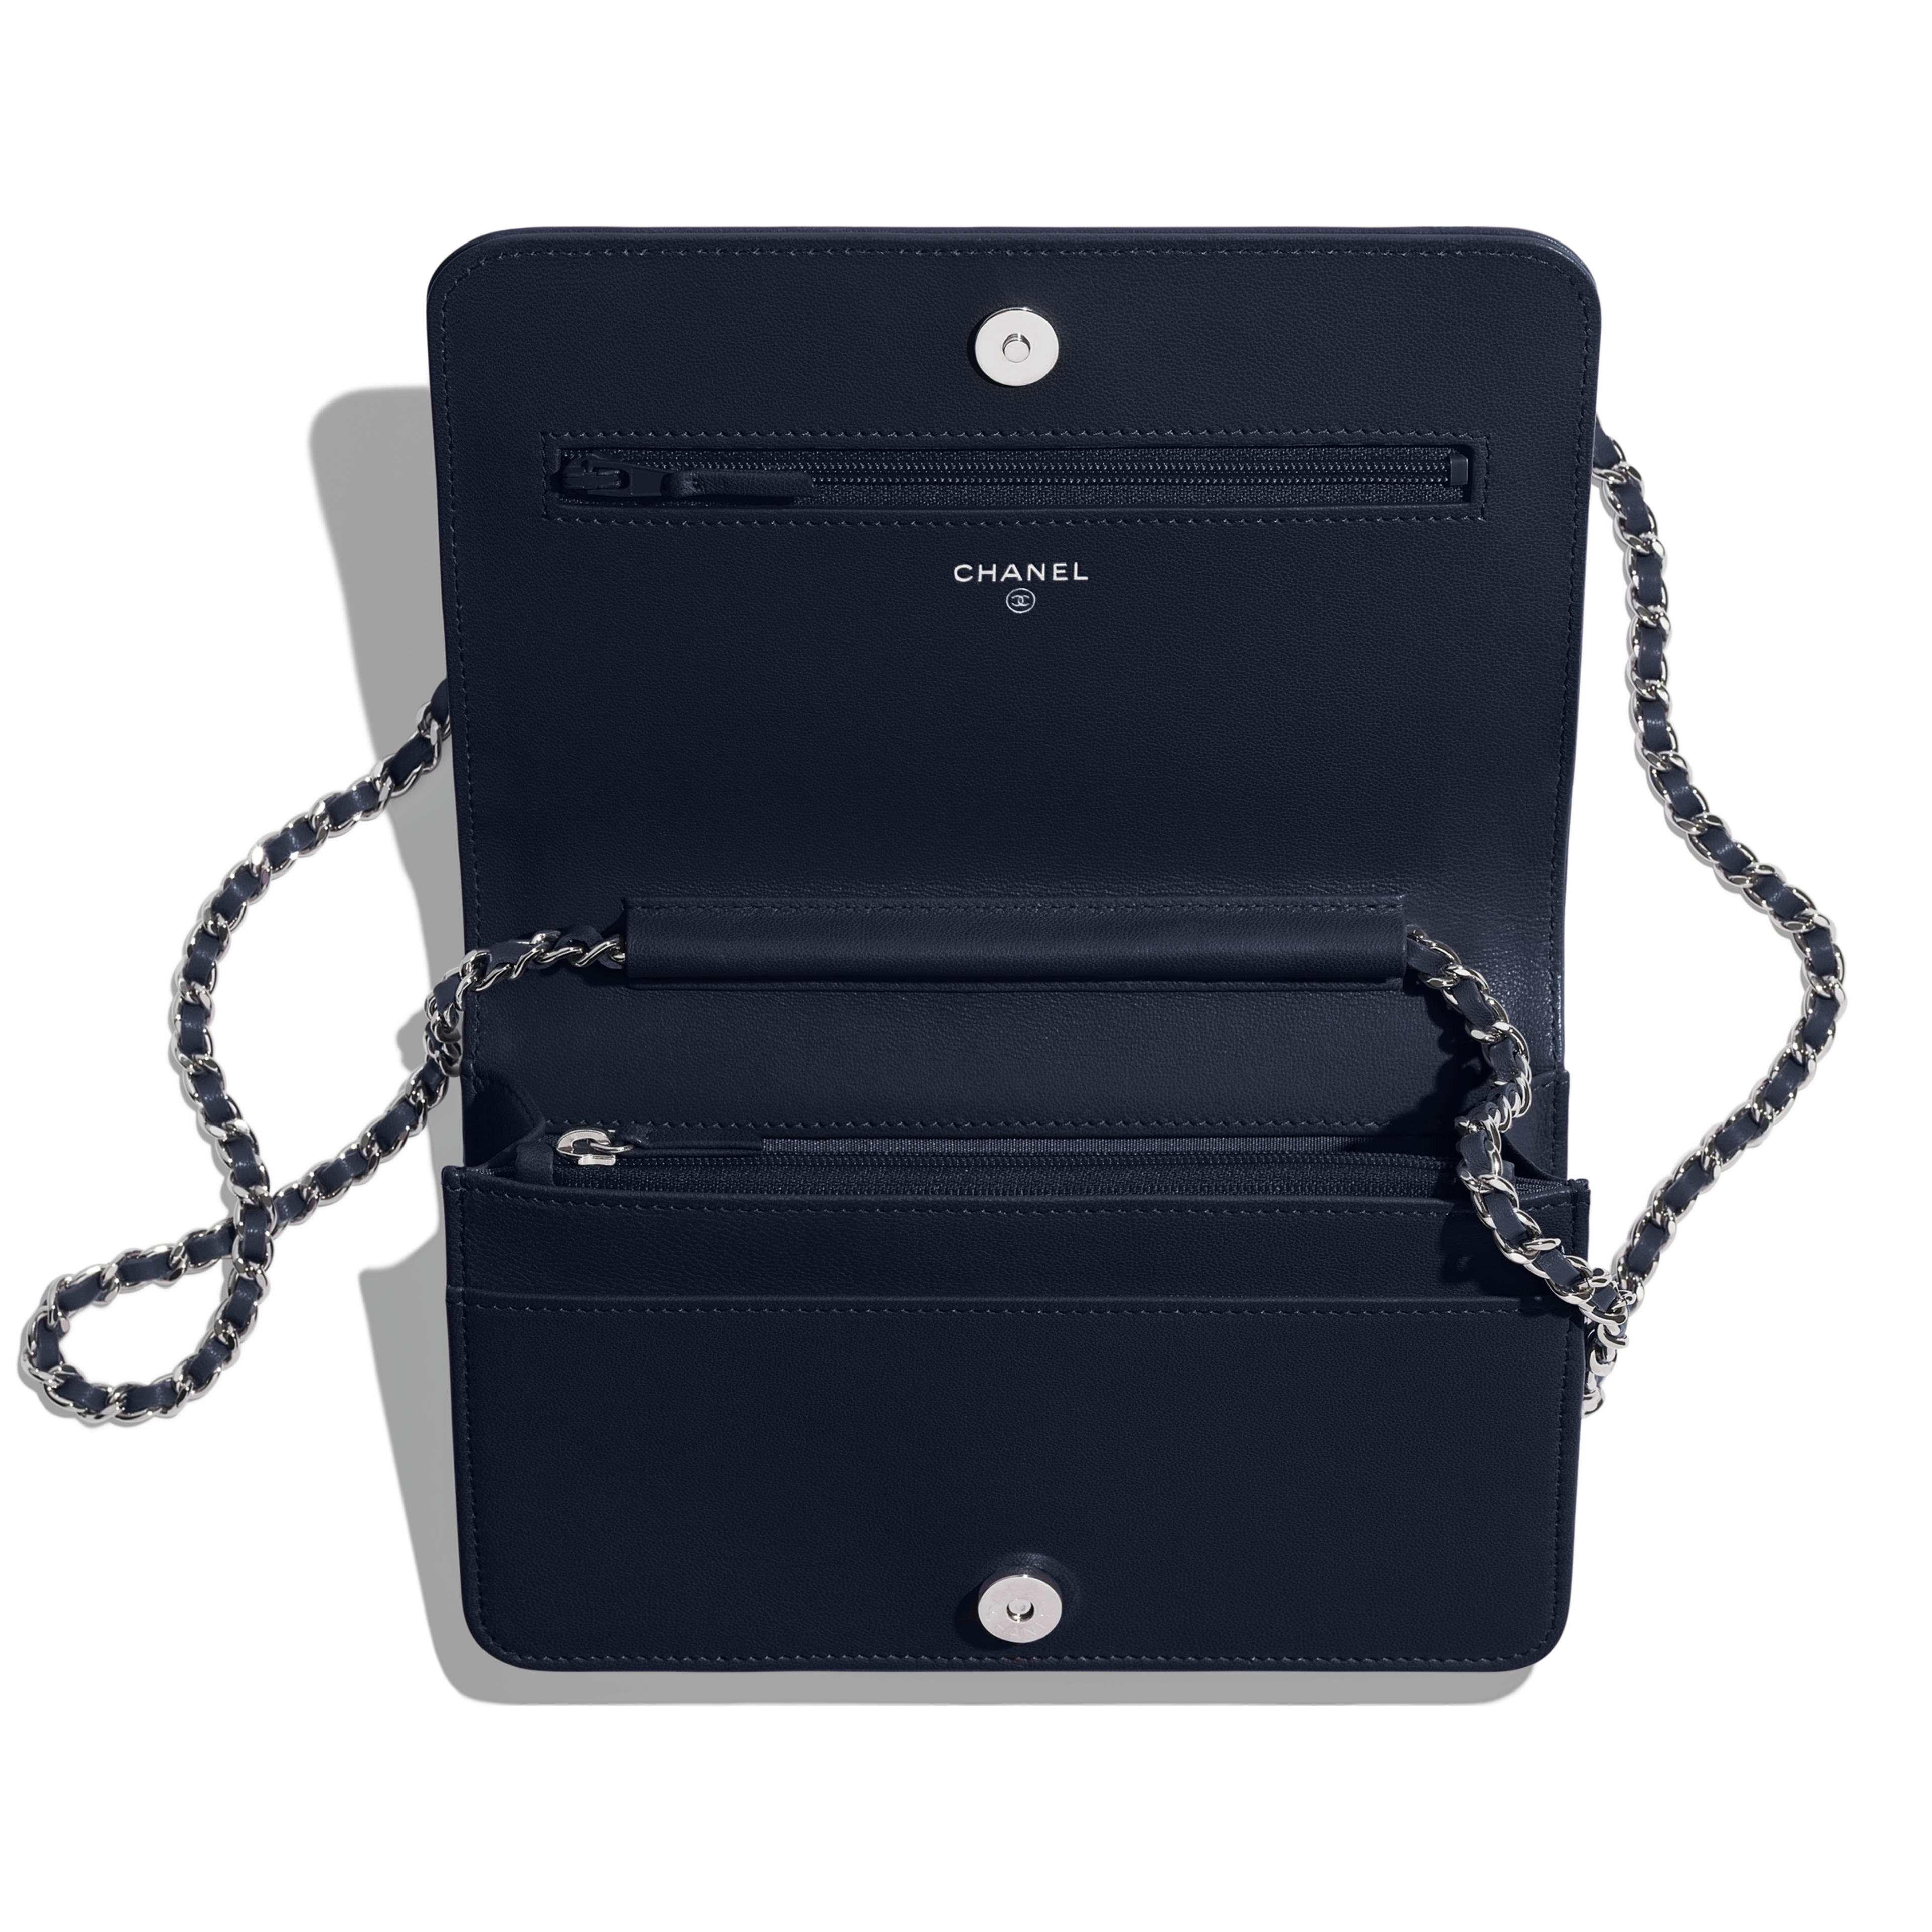 Wallet on Chain - Navy Blue - Lambskin & Silver-Tone Metal - Other view - see full sized version